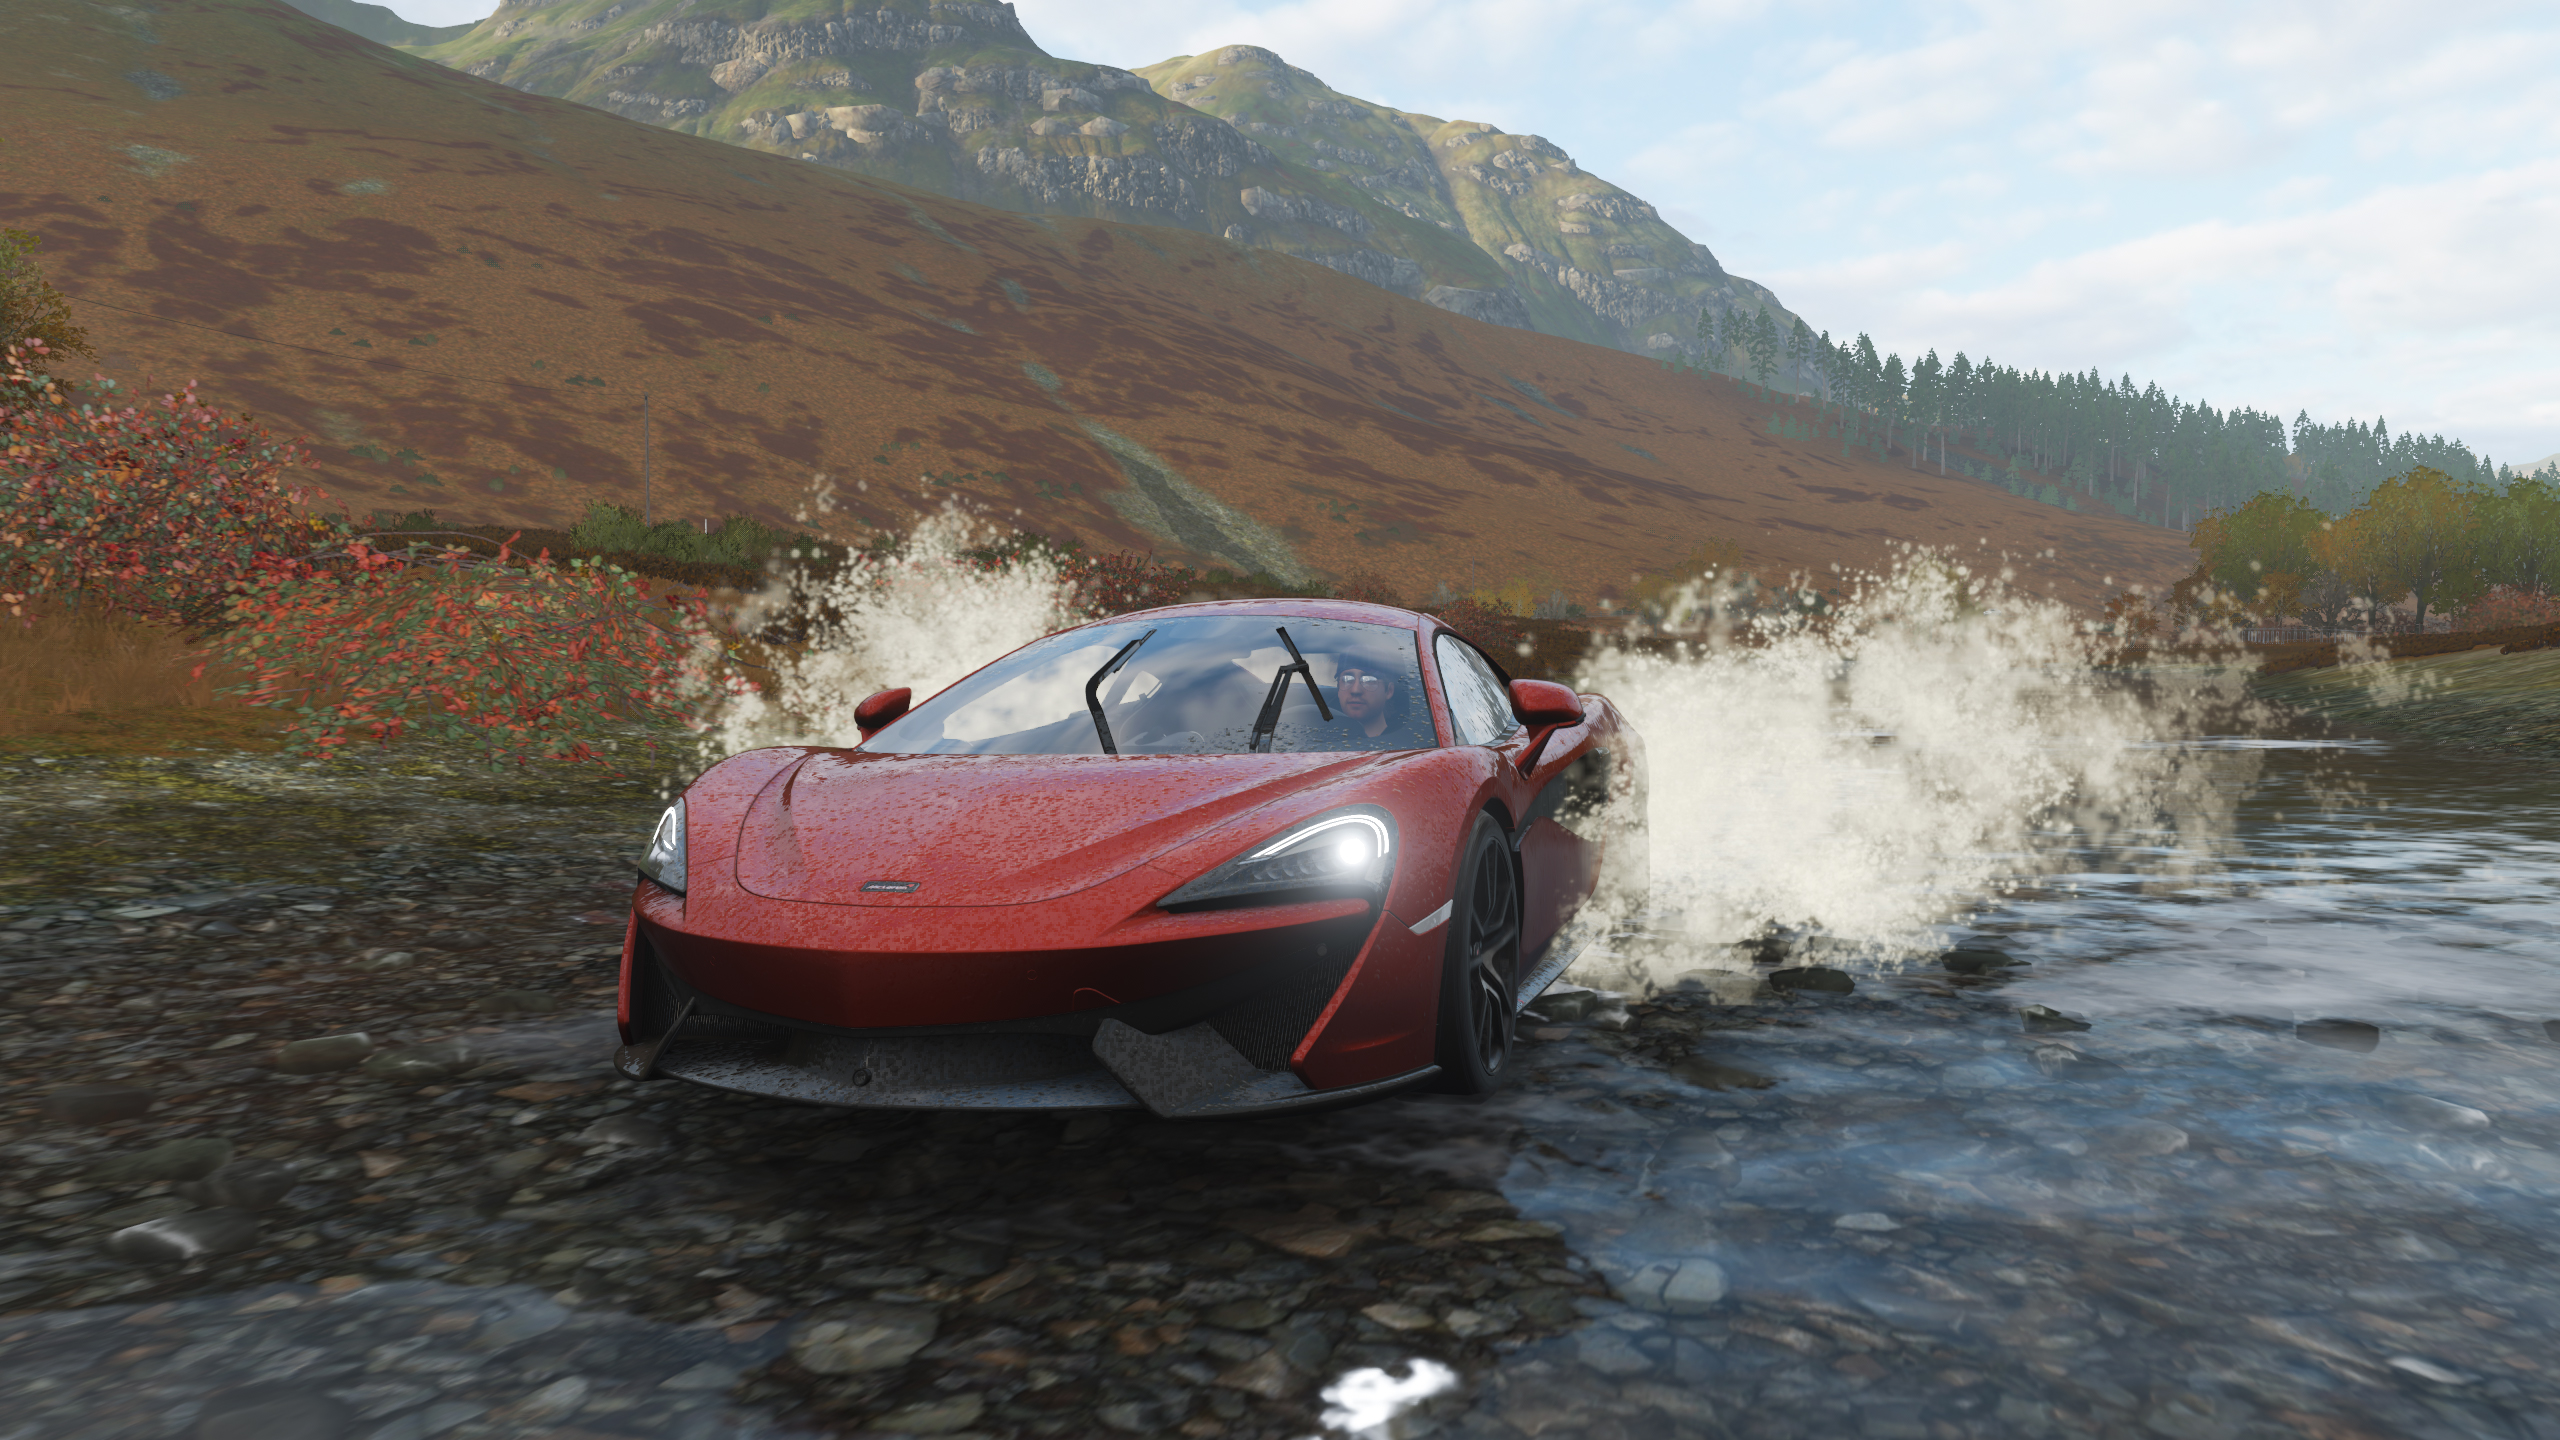 Forza Horizon 4 car list: The best cars for every season and